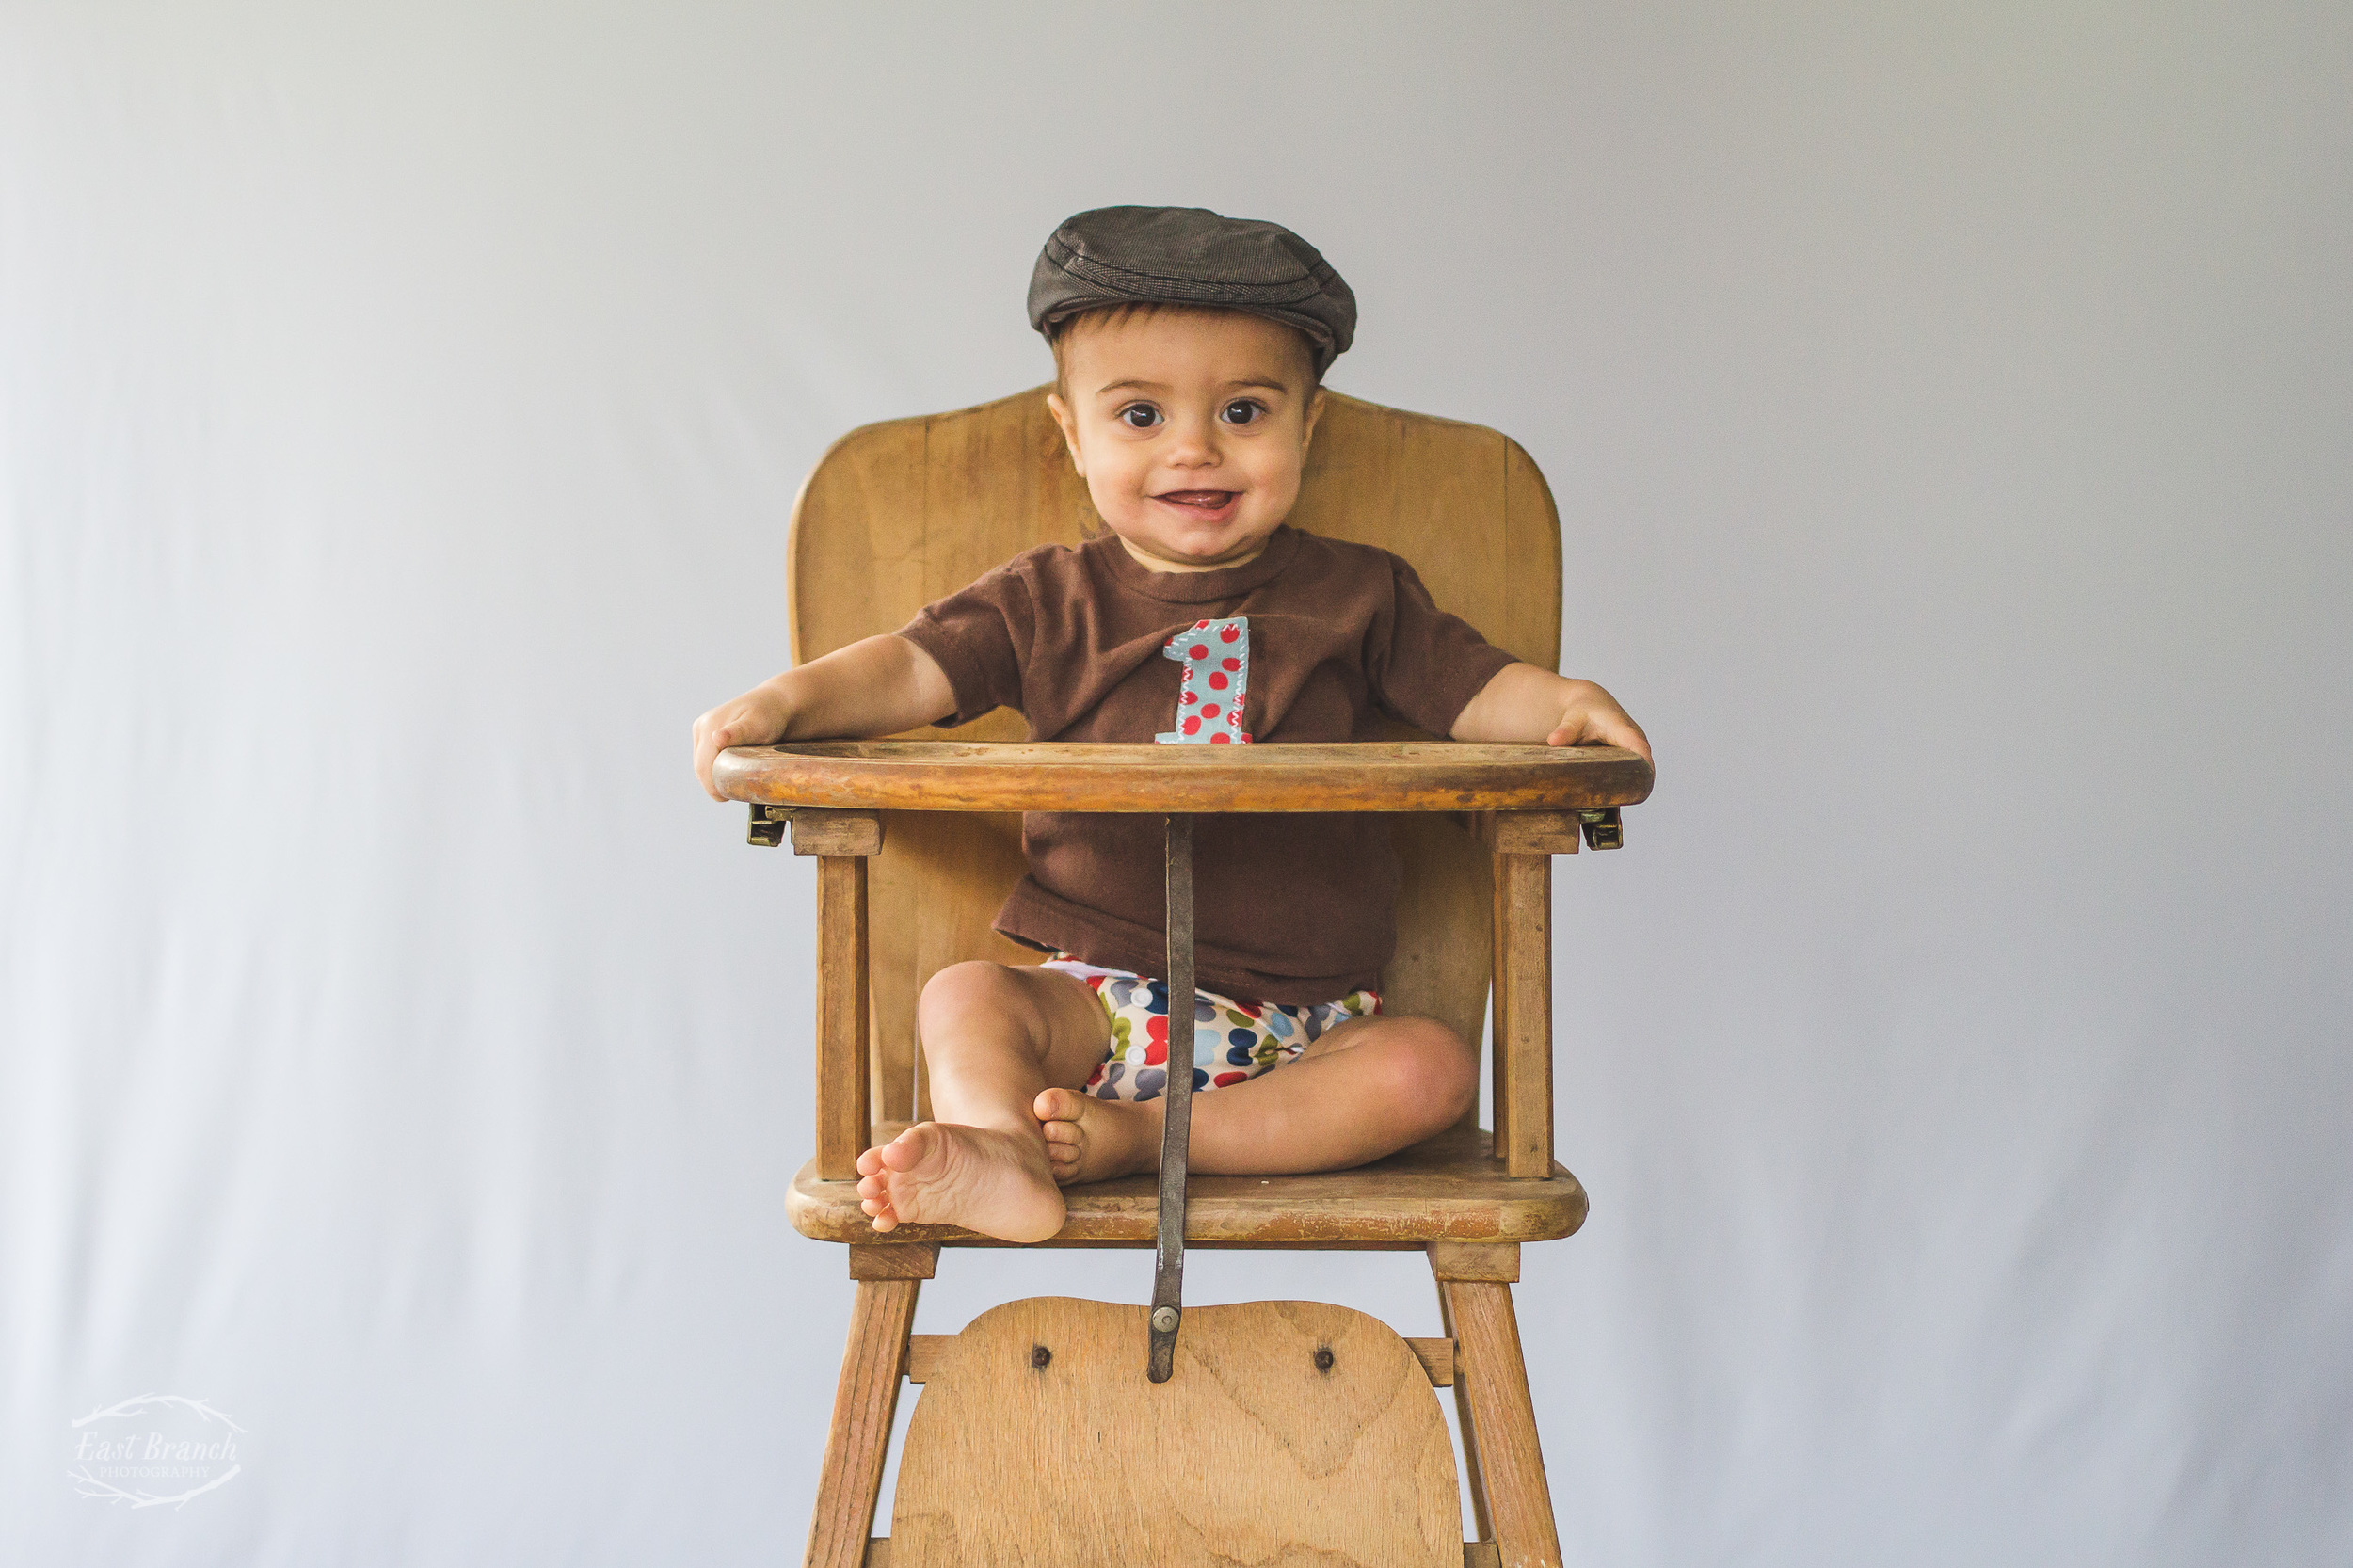 The shirt, the hat, the cloth diaper! Such a great ensemble!